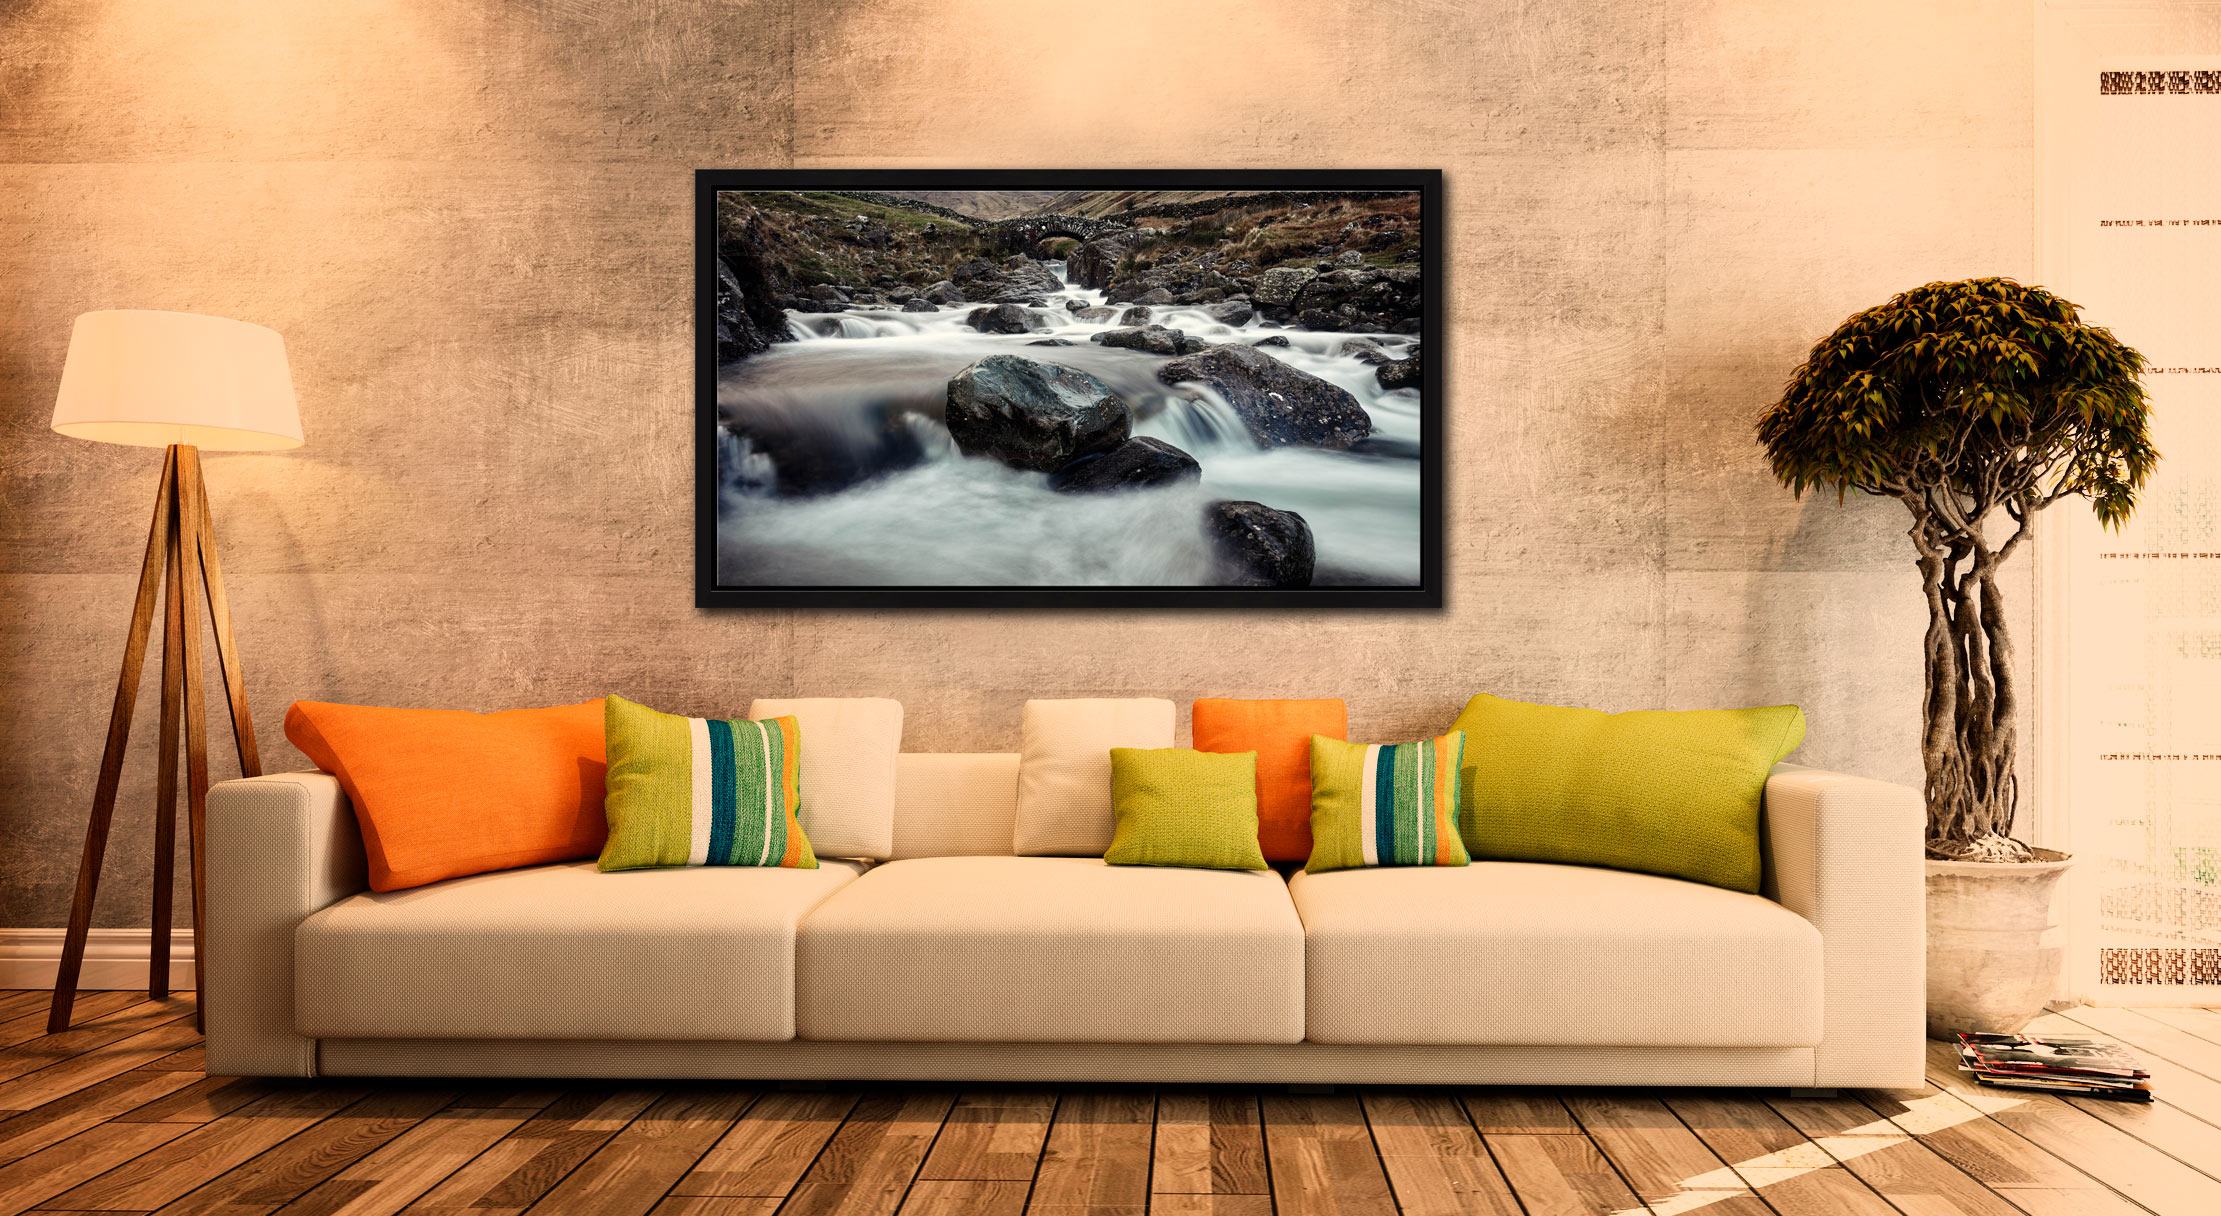 Grains Gill and Stockley Bridge - Black oak floater frame with acrylic glazing on Wall